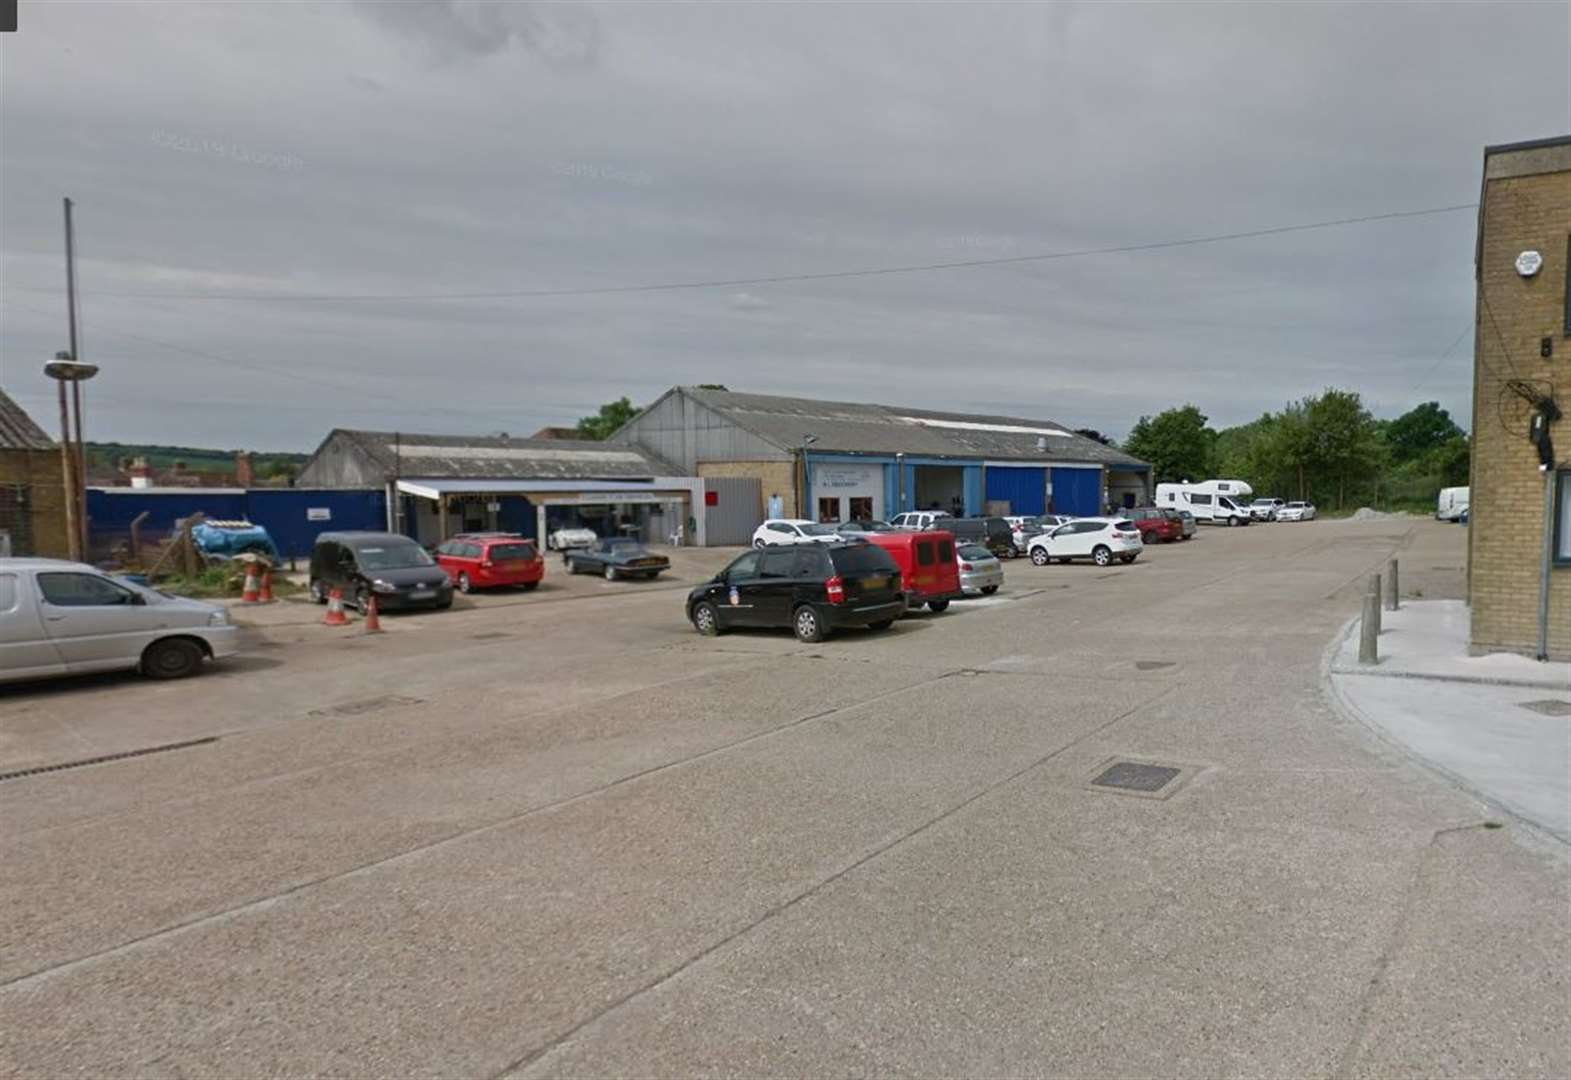 Industrial estate rocked by catalytic converter thefts